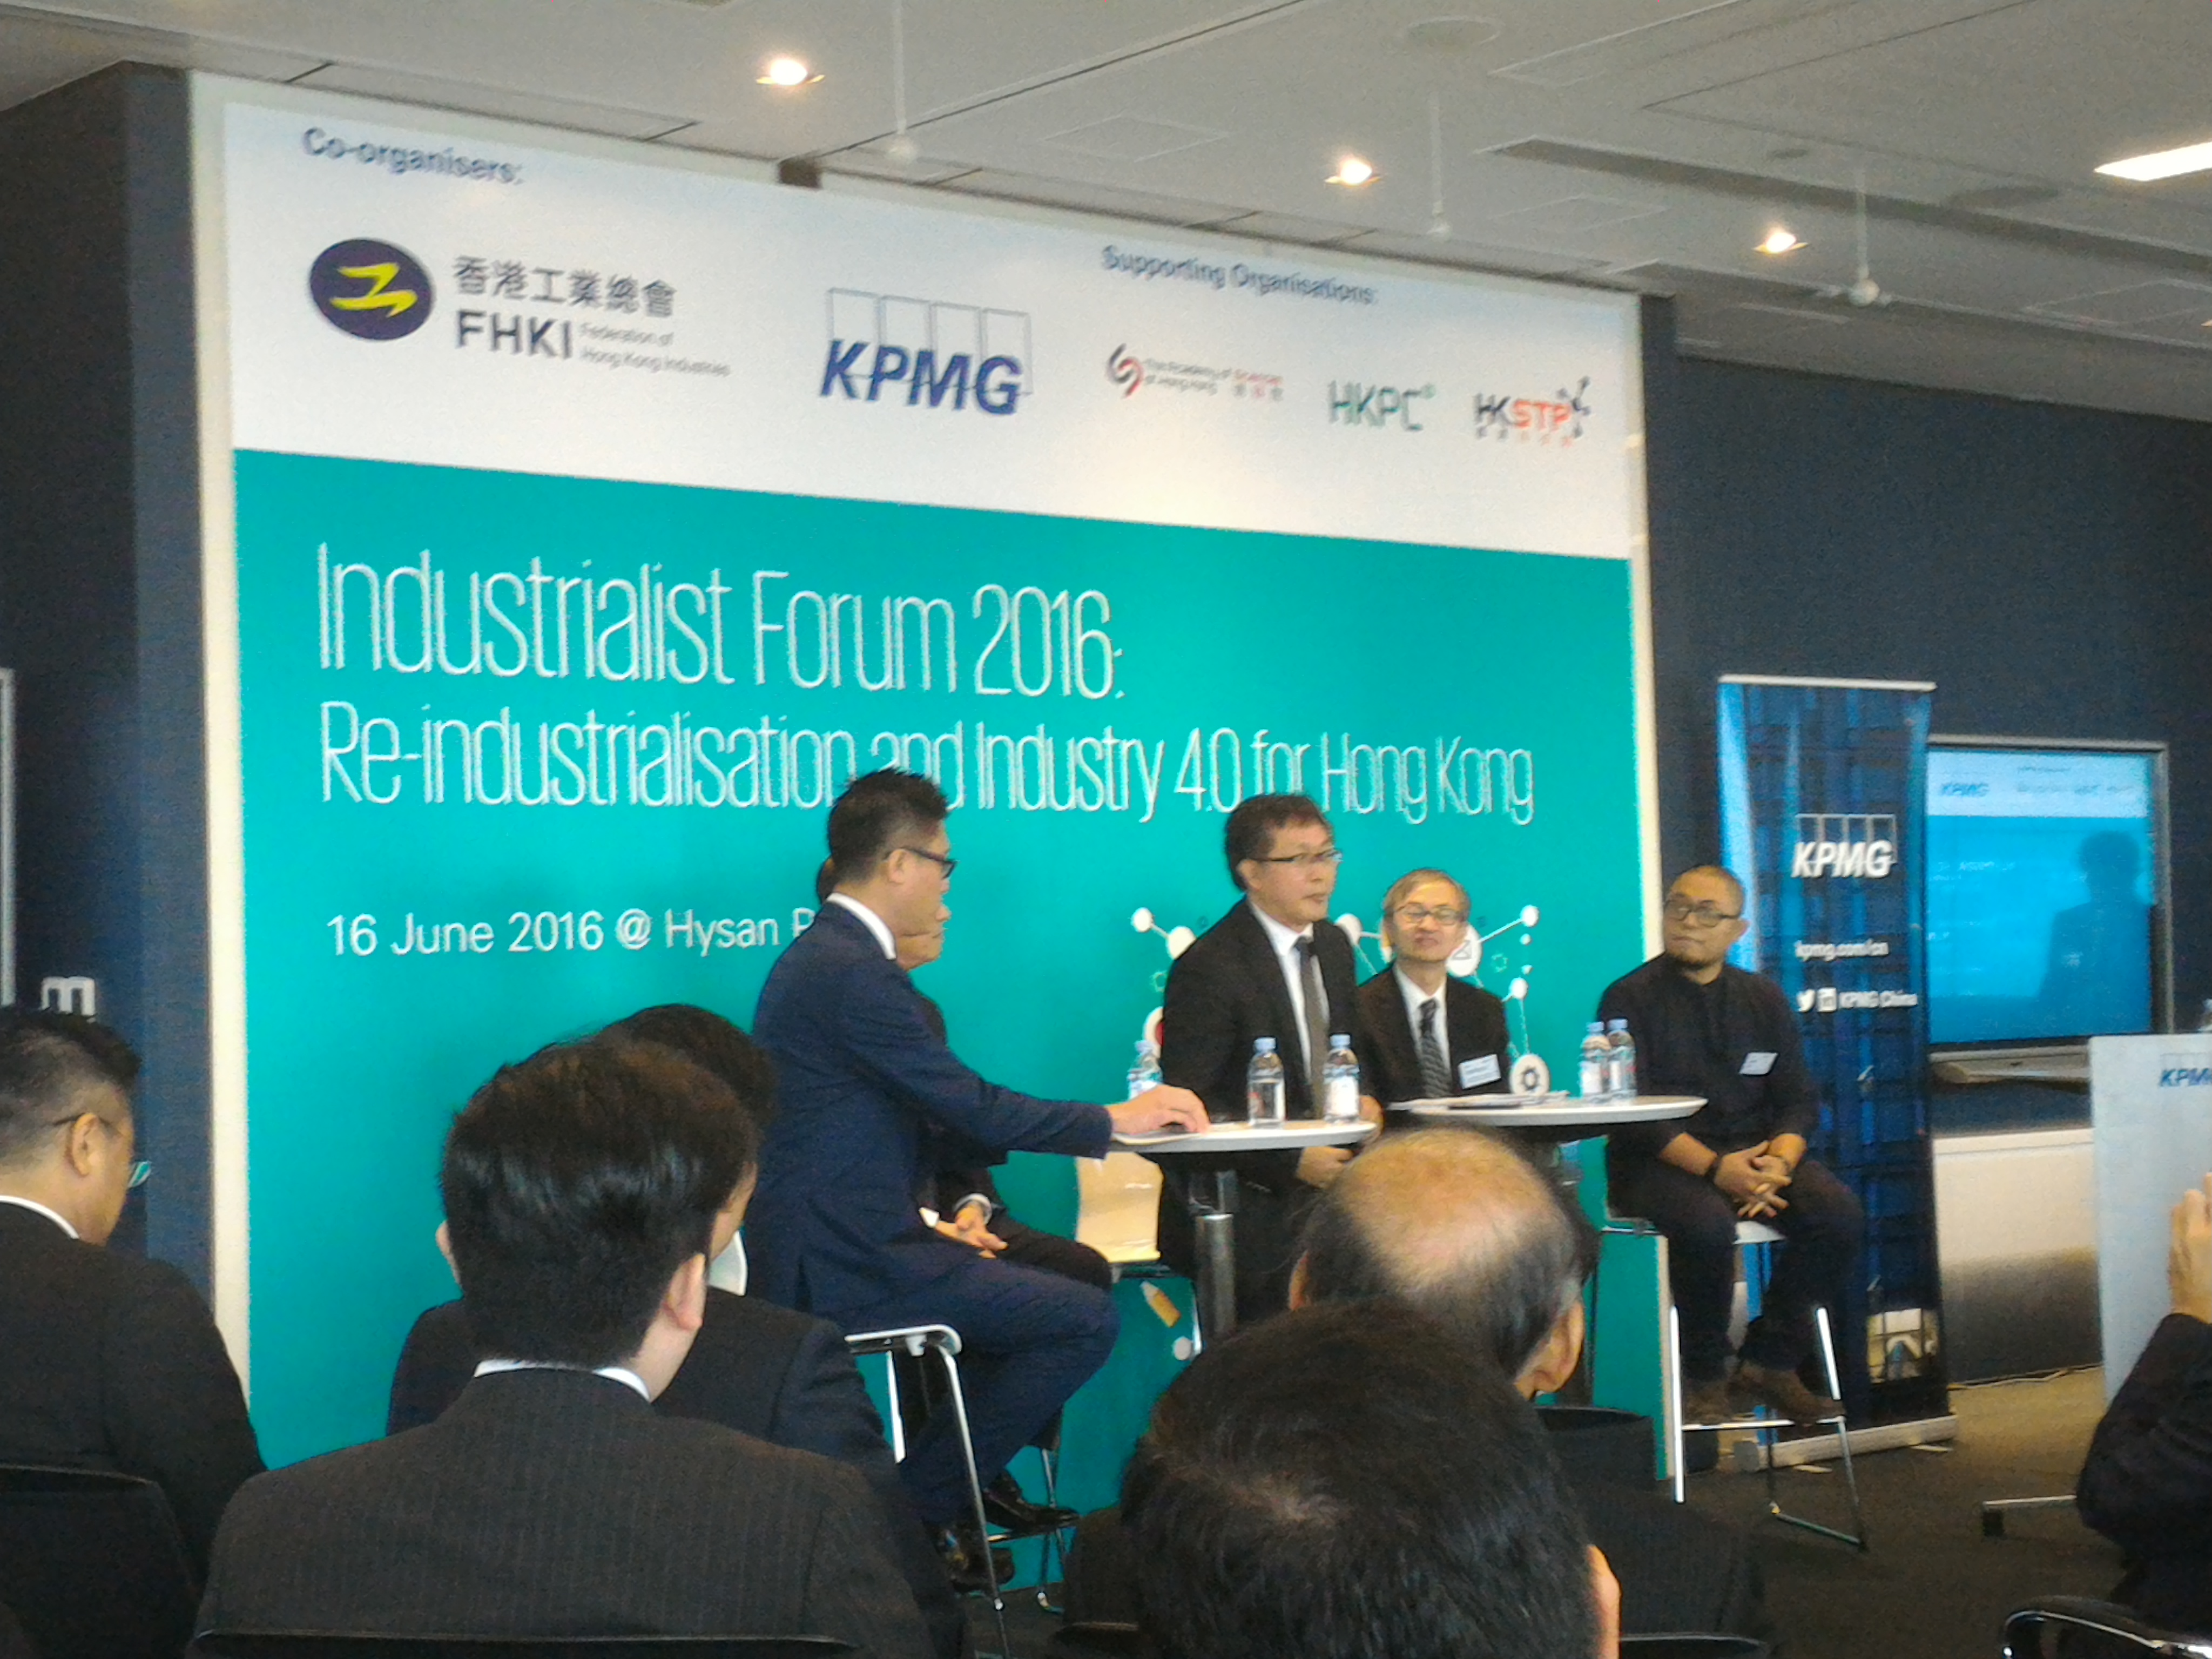 Re-industrialization and Industry 4.0 for Hong Kong